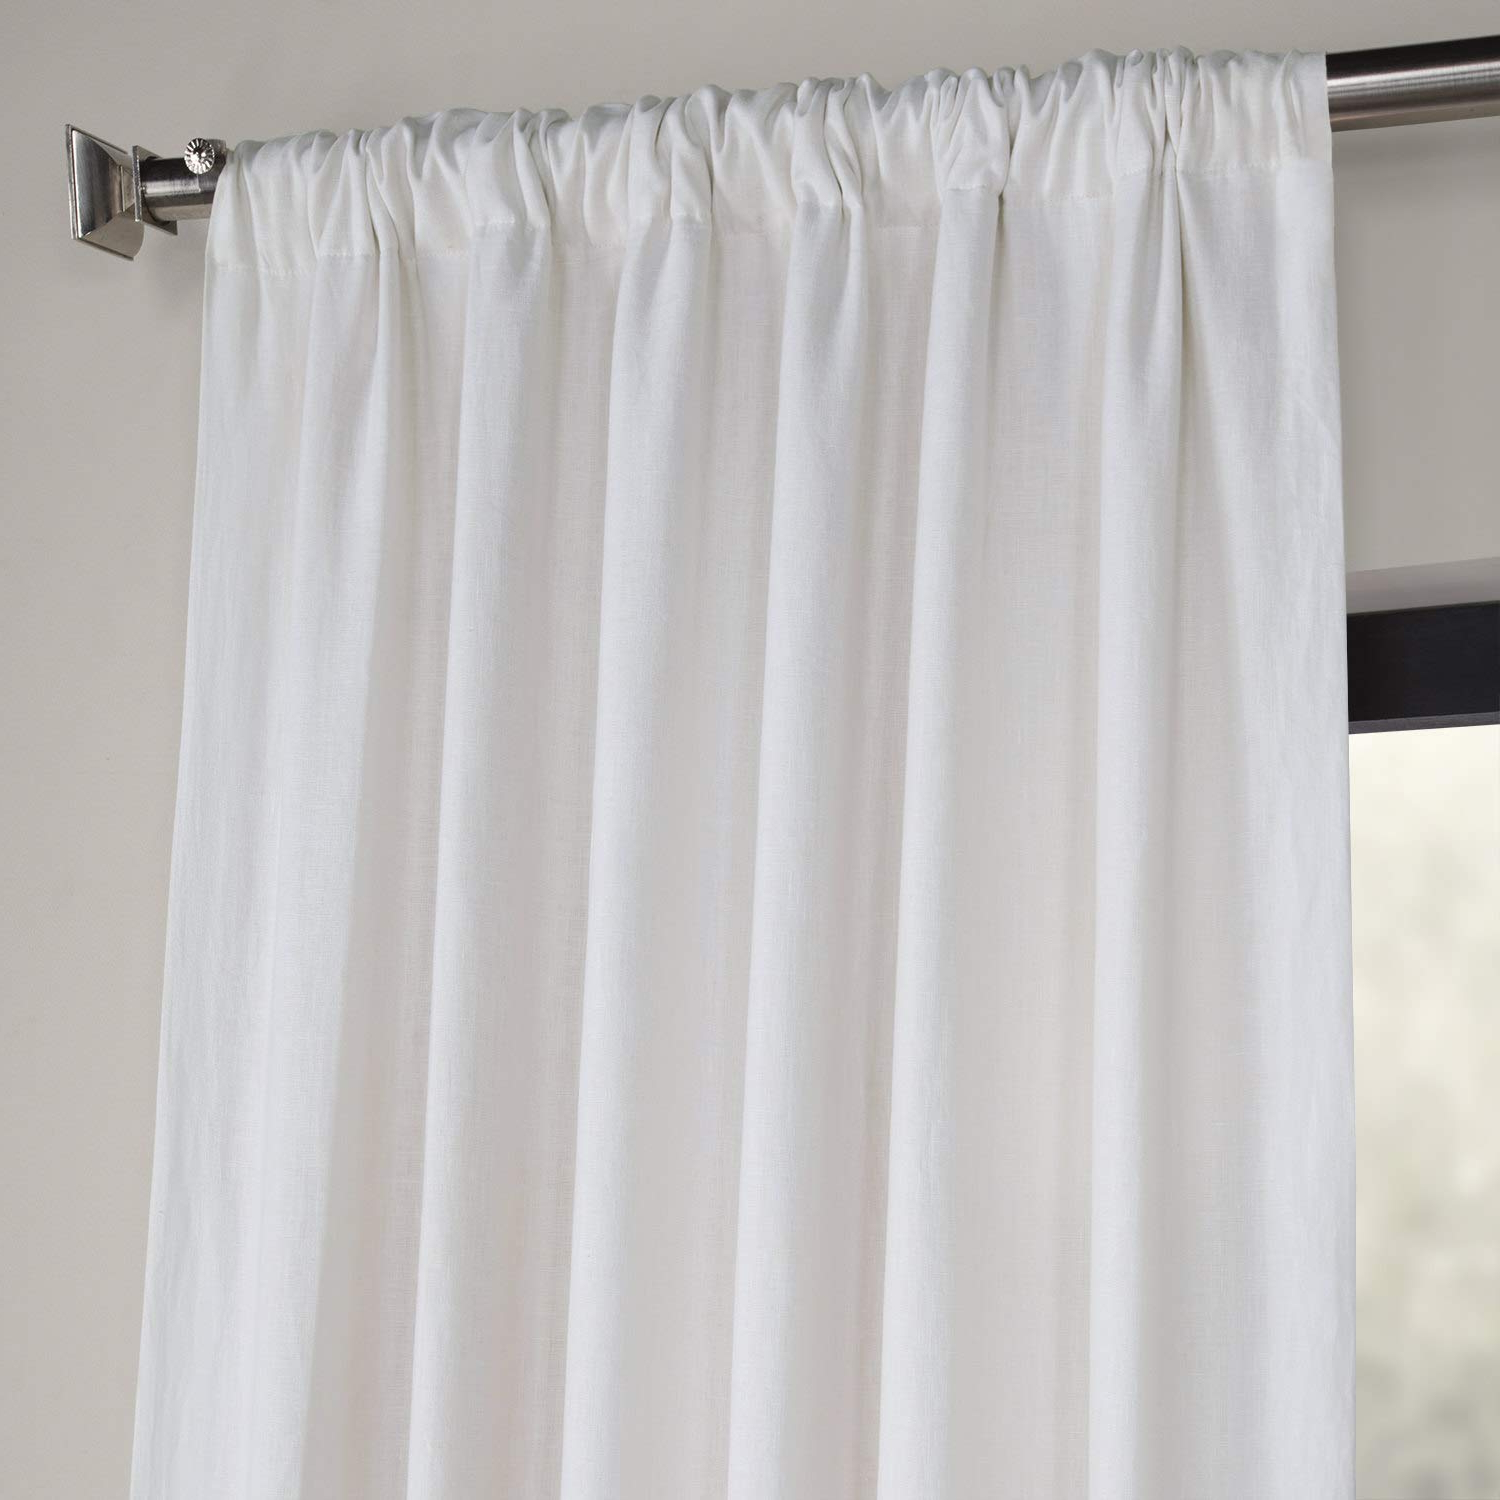 Most Popular Ln Xs1704 96 French Linen Curtain, Crisp White, 50 X 96 Throughout French Linen Lined Curtain Panels (View 15 of 20)